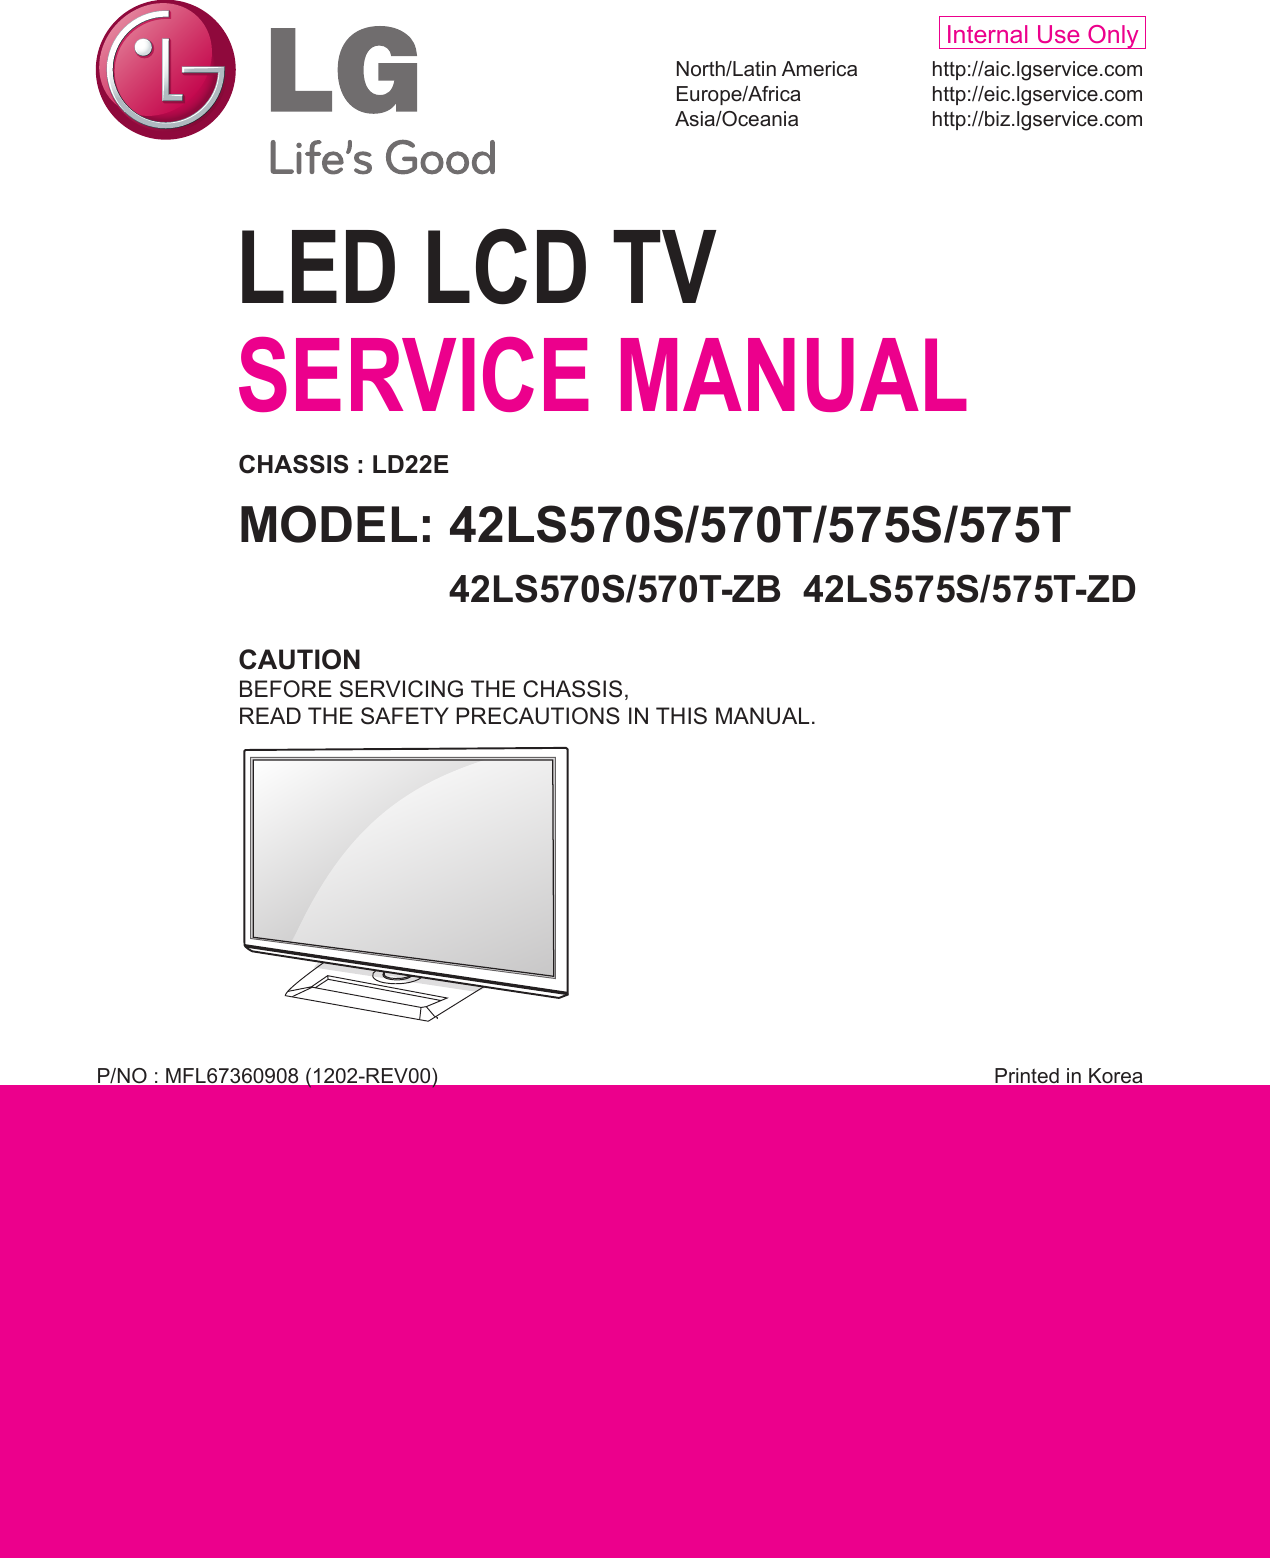 Lg 42ls570s Users Manual 1995 Bmw Fuse Box The Little E35 Before